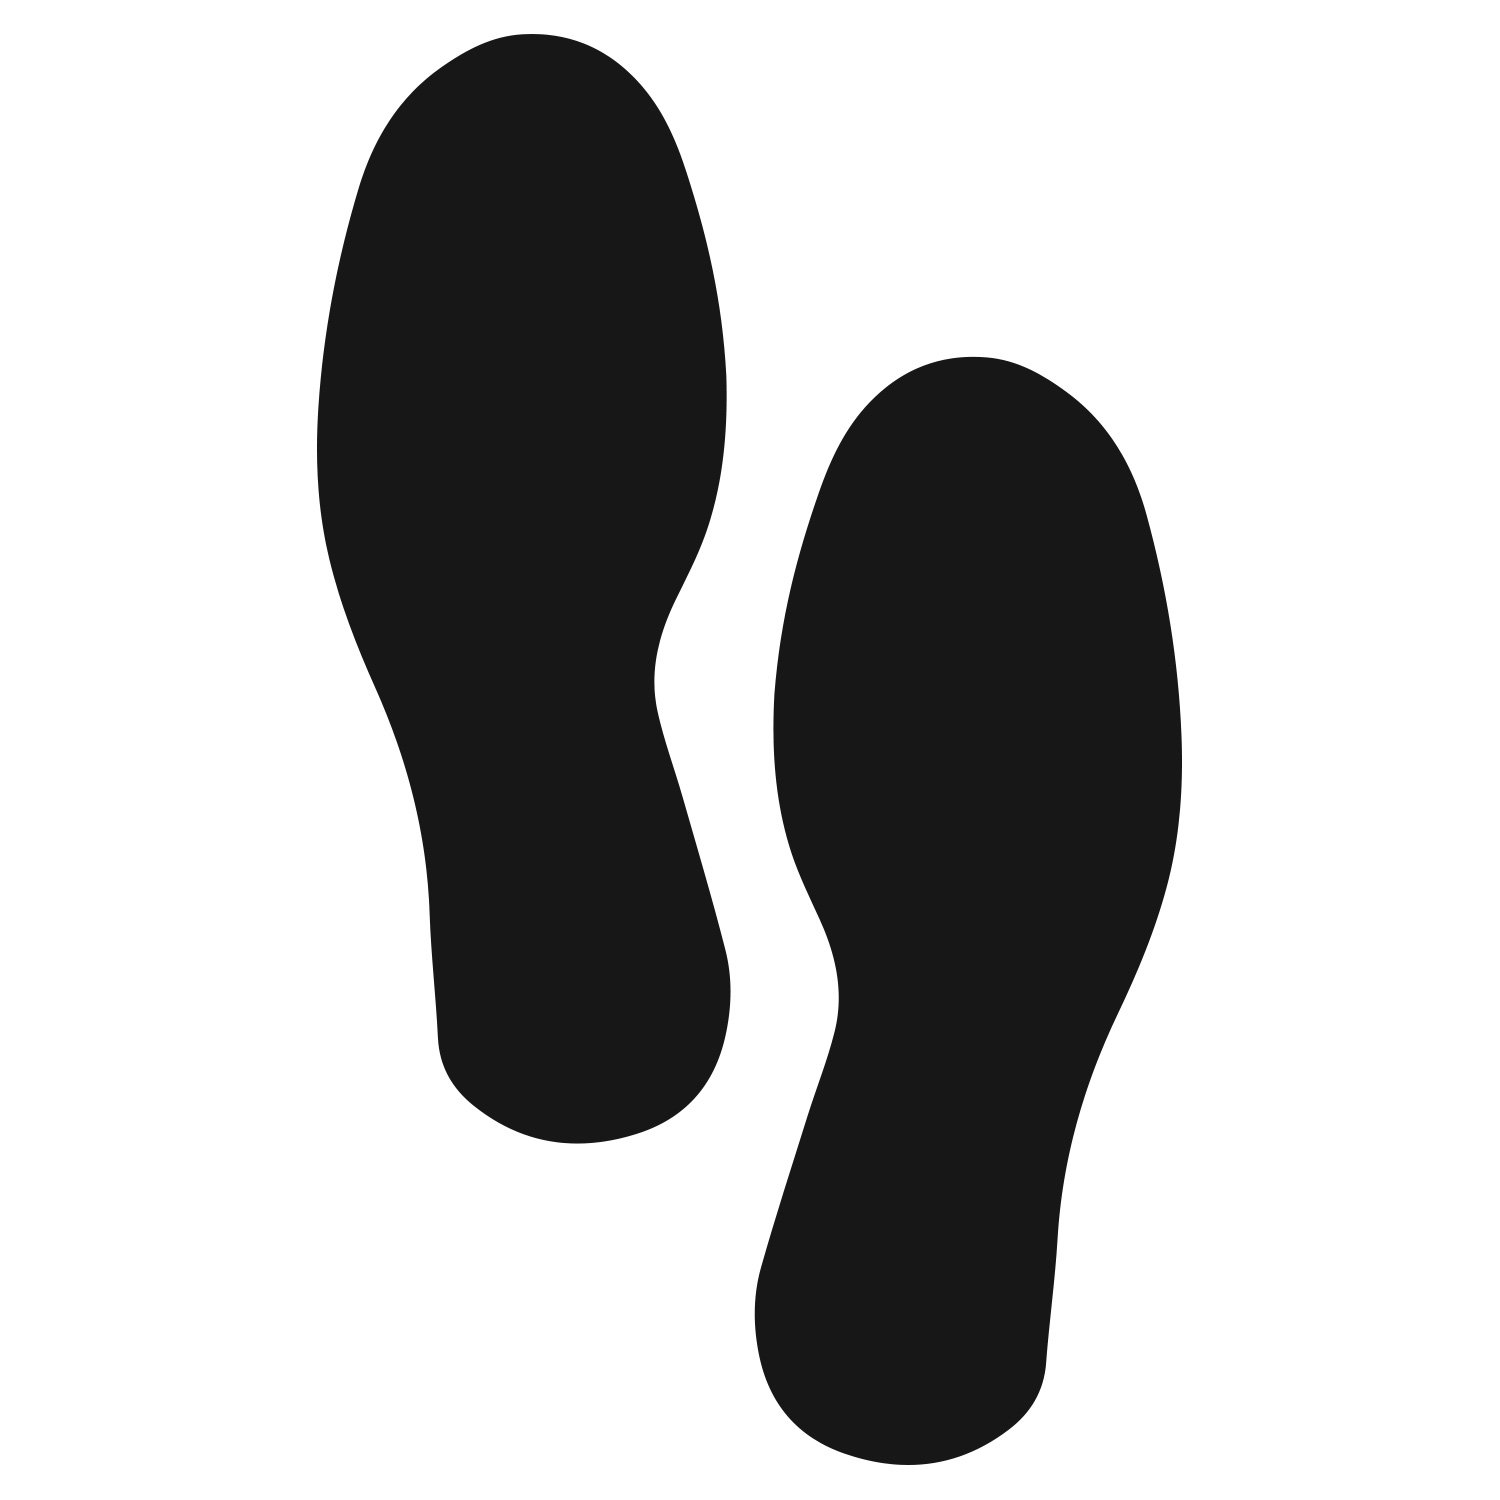 ifloortape Black Footprints | Industrial Premium Quality | Safety Aisle Visibility Markers (5 Pairs) 9.5 Inch